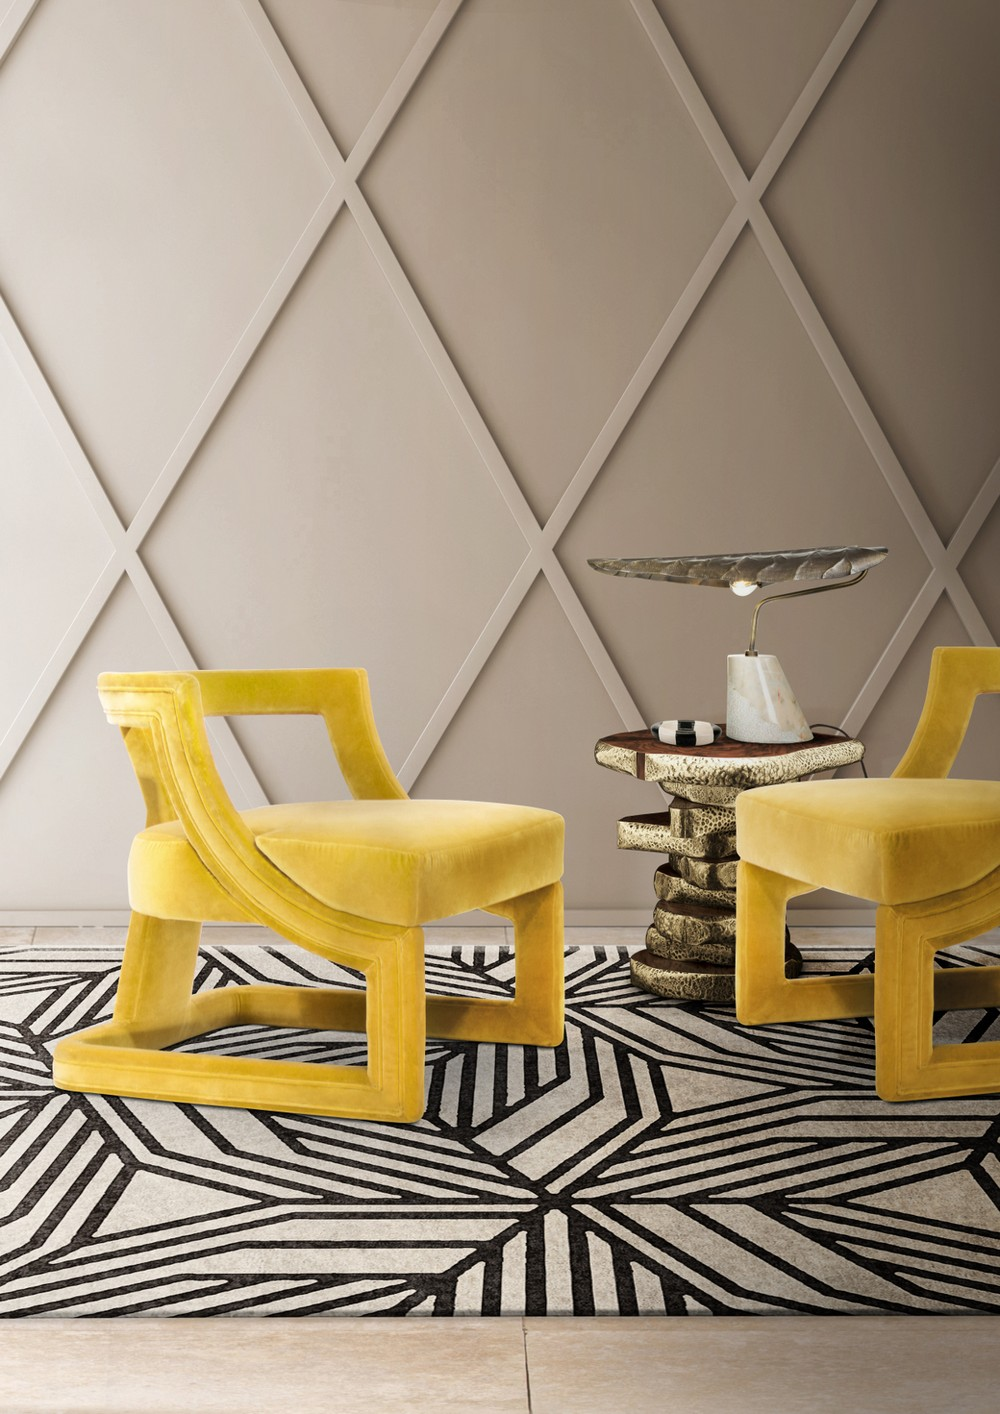 Ultimate Mellow Yellow Inspirations For A Summer Home Decor mellow yellow inspirations Ultimate Mellow Yellow Inspirations For A Summer Home Decor Ultimate Mellow Yellow Inspirations For A Summer Home Decor 6